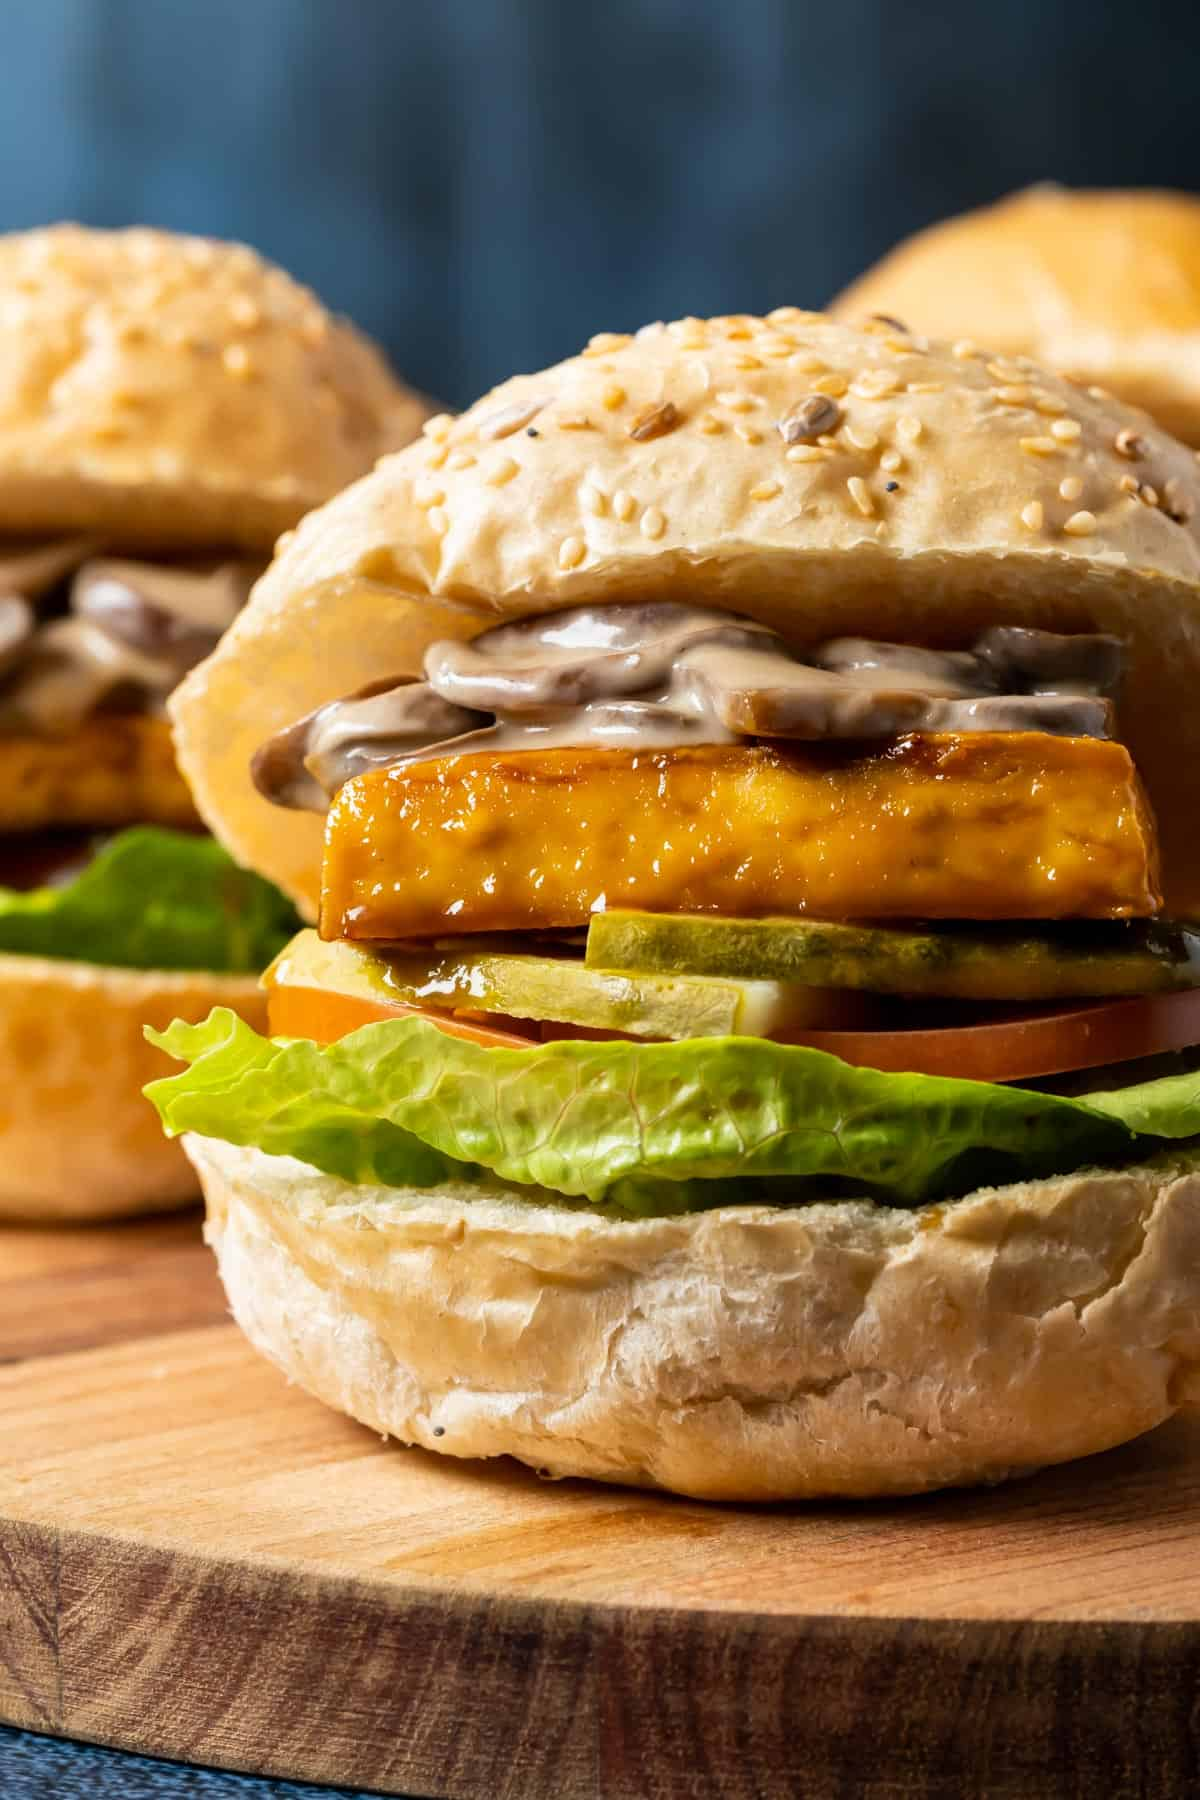 Tofu burgers on a wooden board.